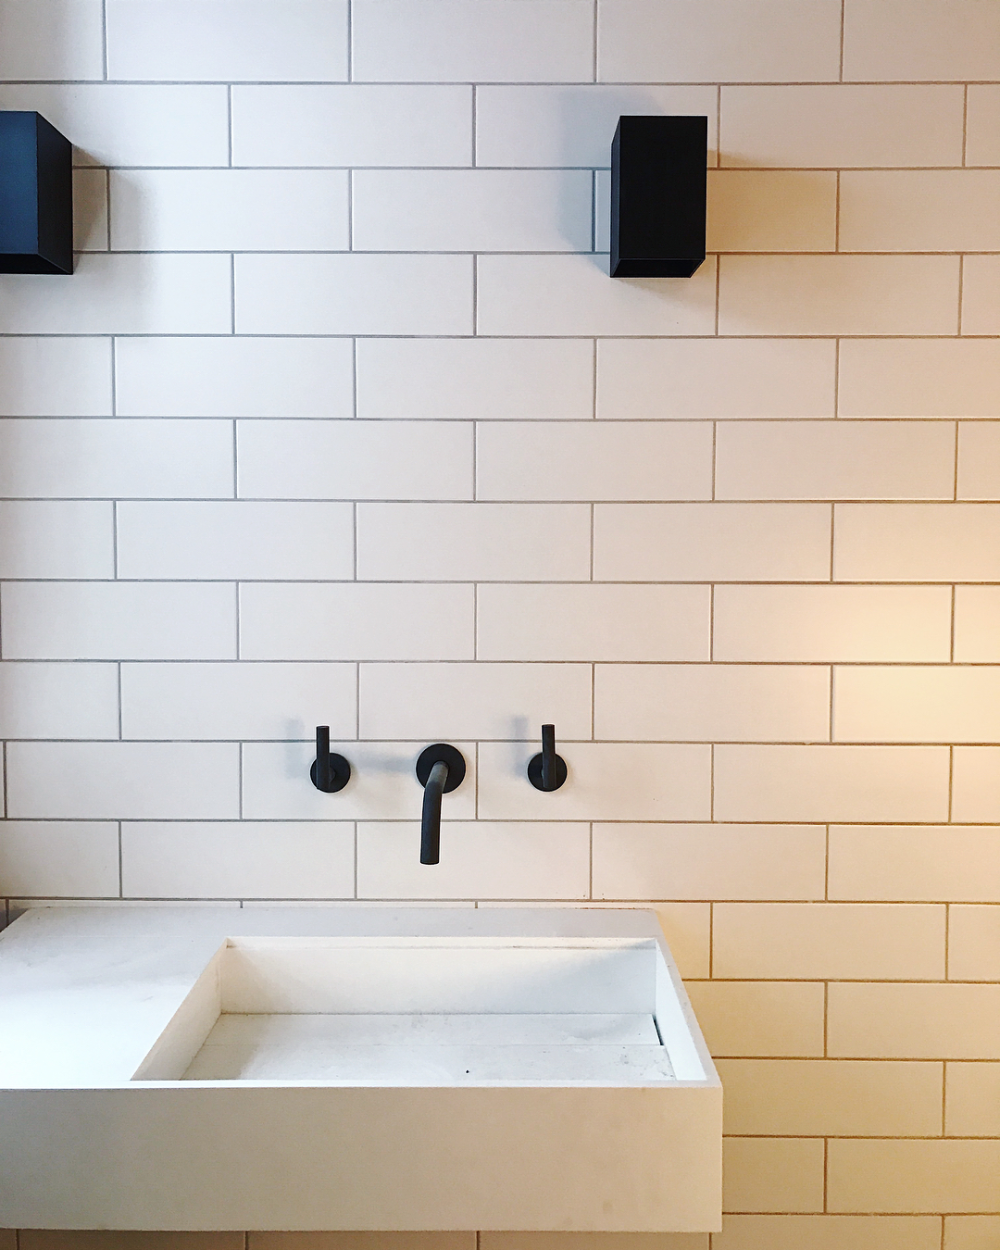 Sara Moody Shacklewellarchitects Instagram Photos And Videos In 2020 White Wall Tiles Bathroom Wall Tile Wall Tiles